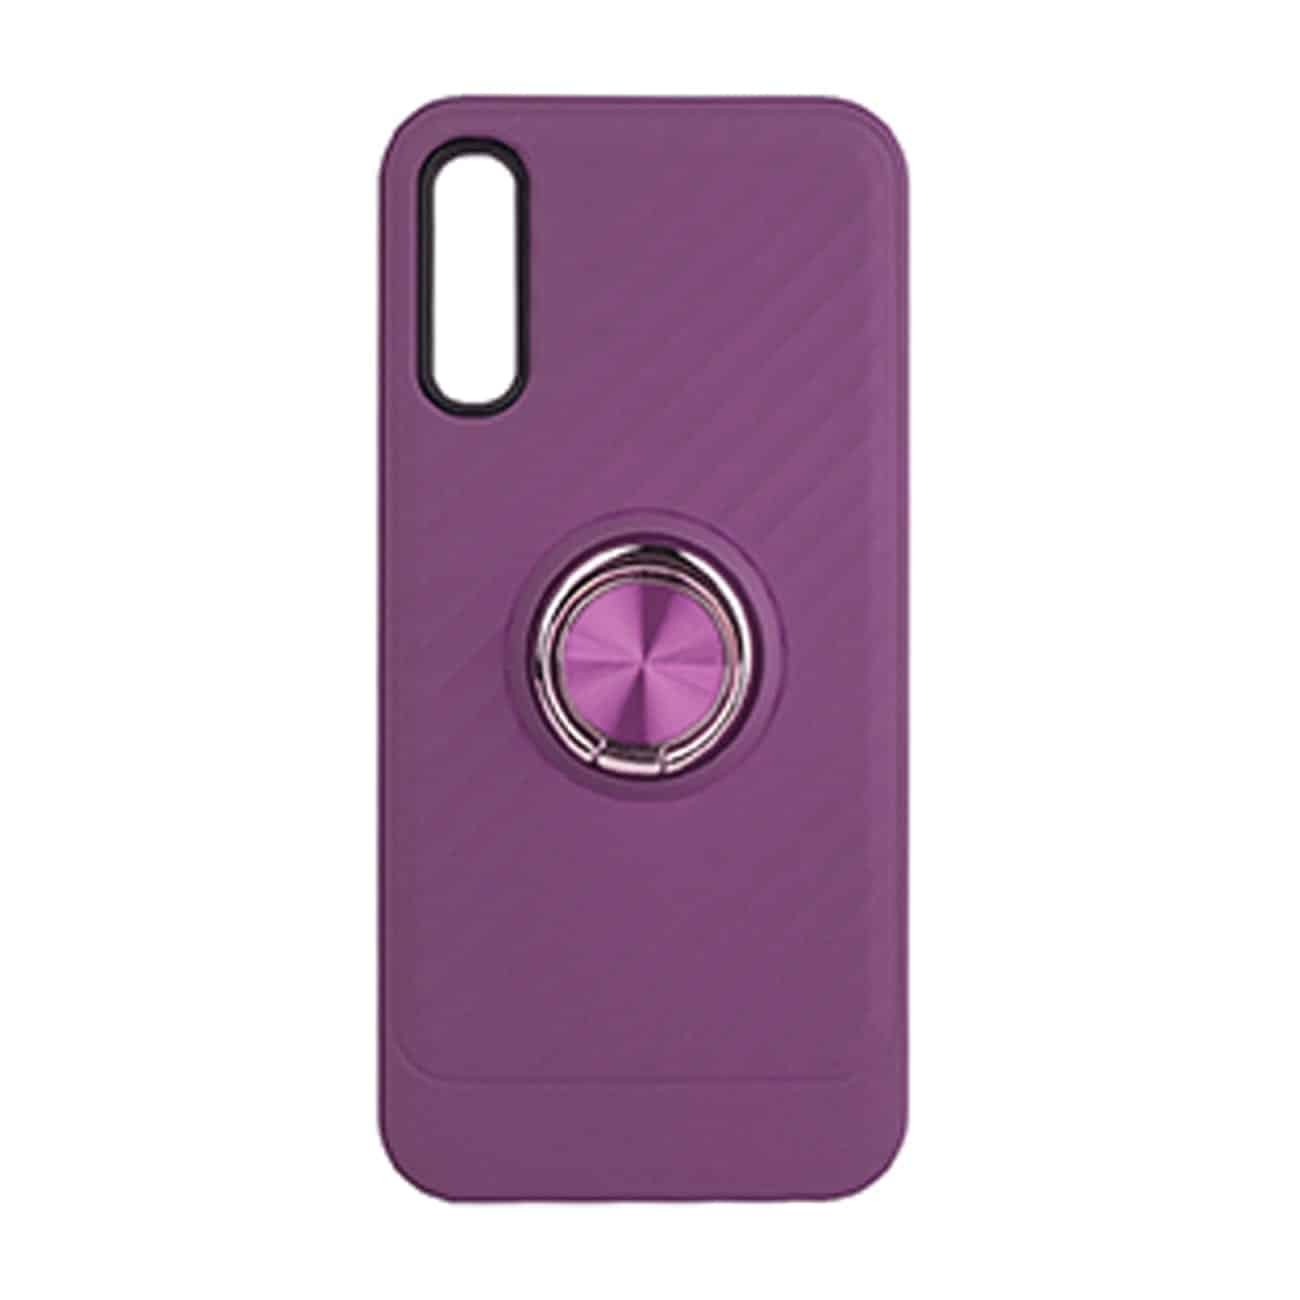 SAMSUNG GALAXY A70 Case with Ring Holder InPurple